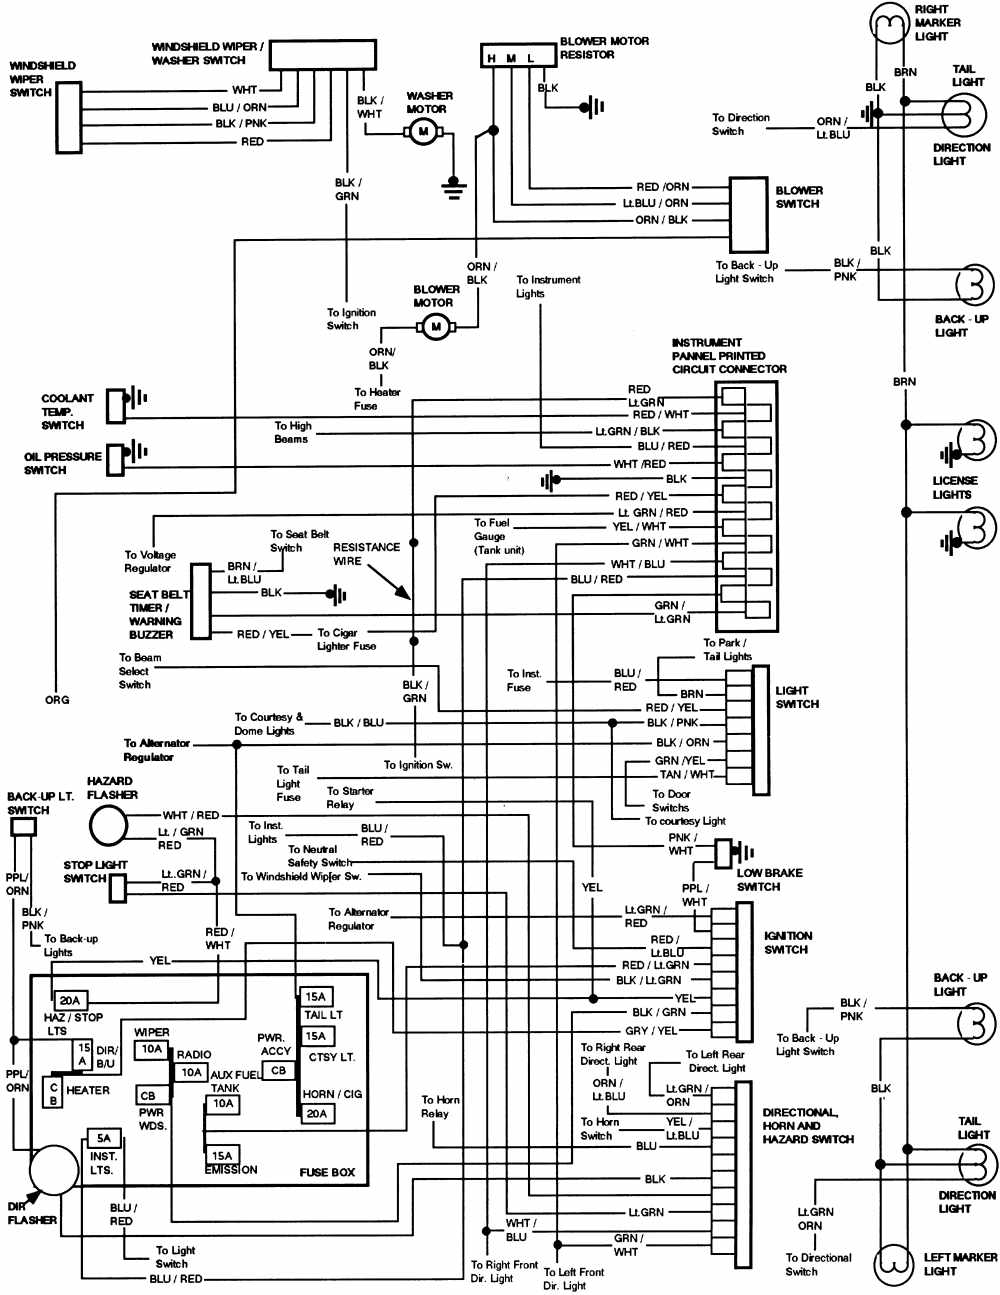 wiring diagram for a 1981 ford f150